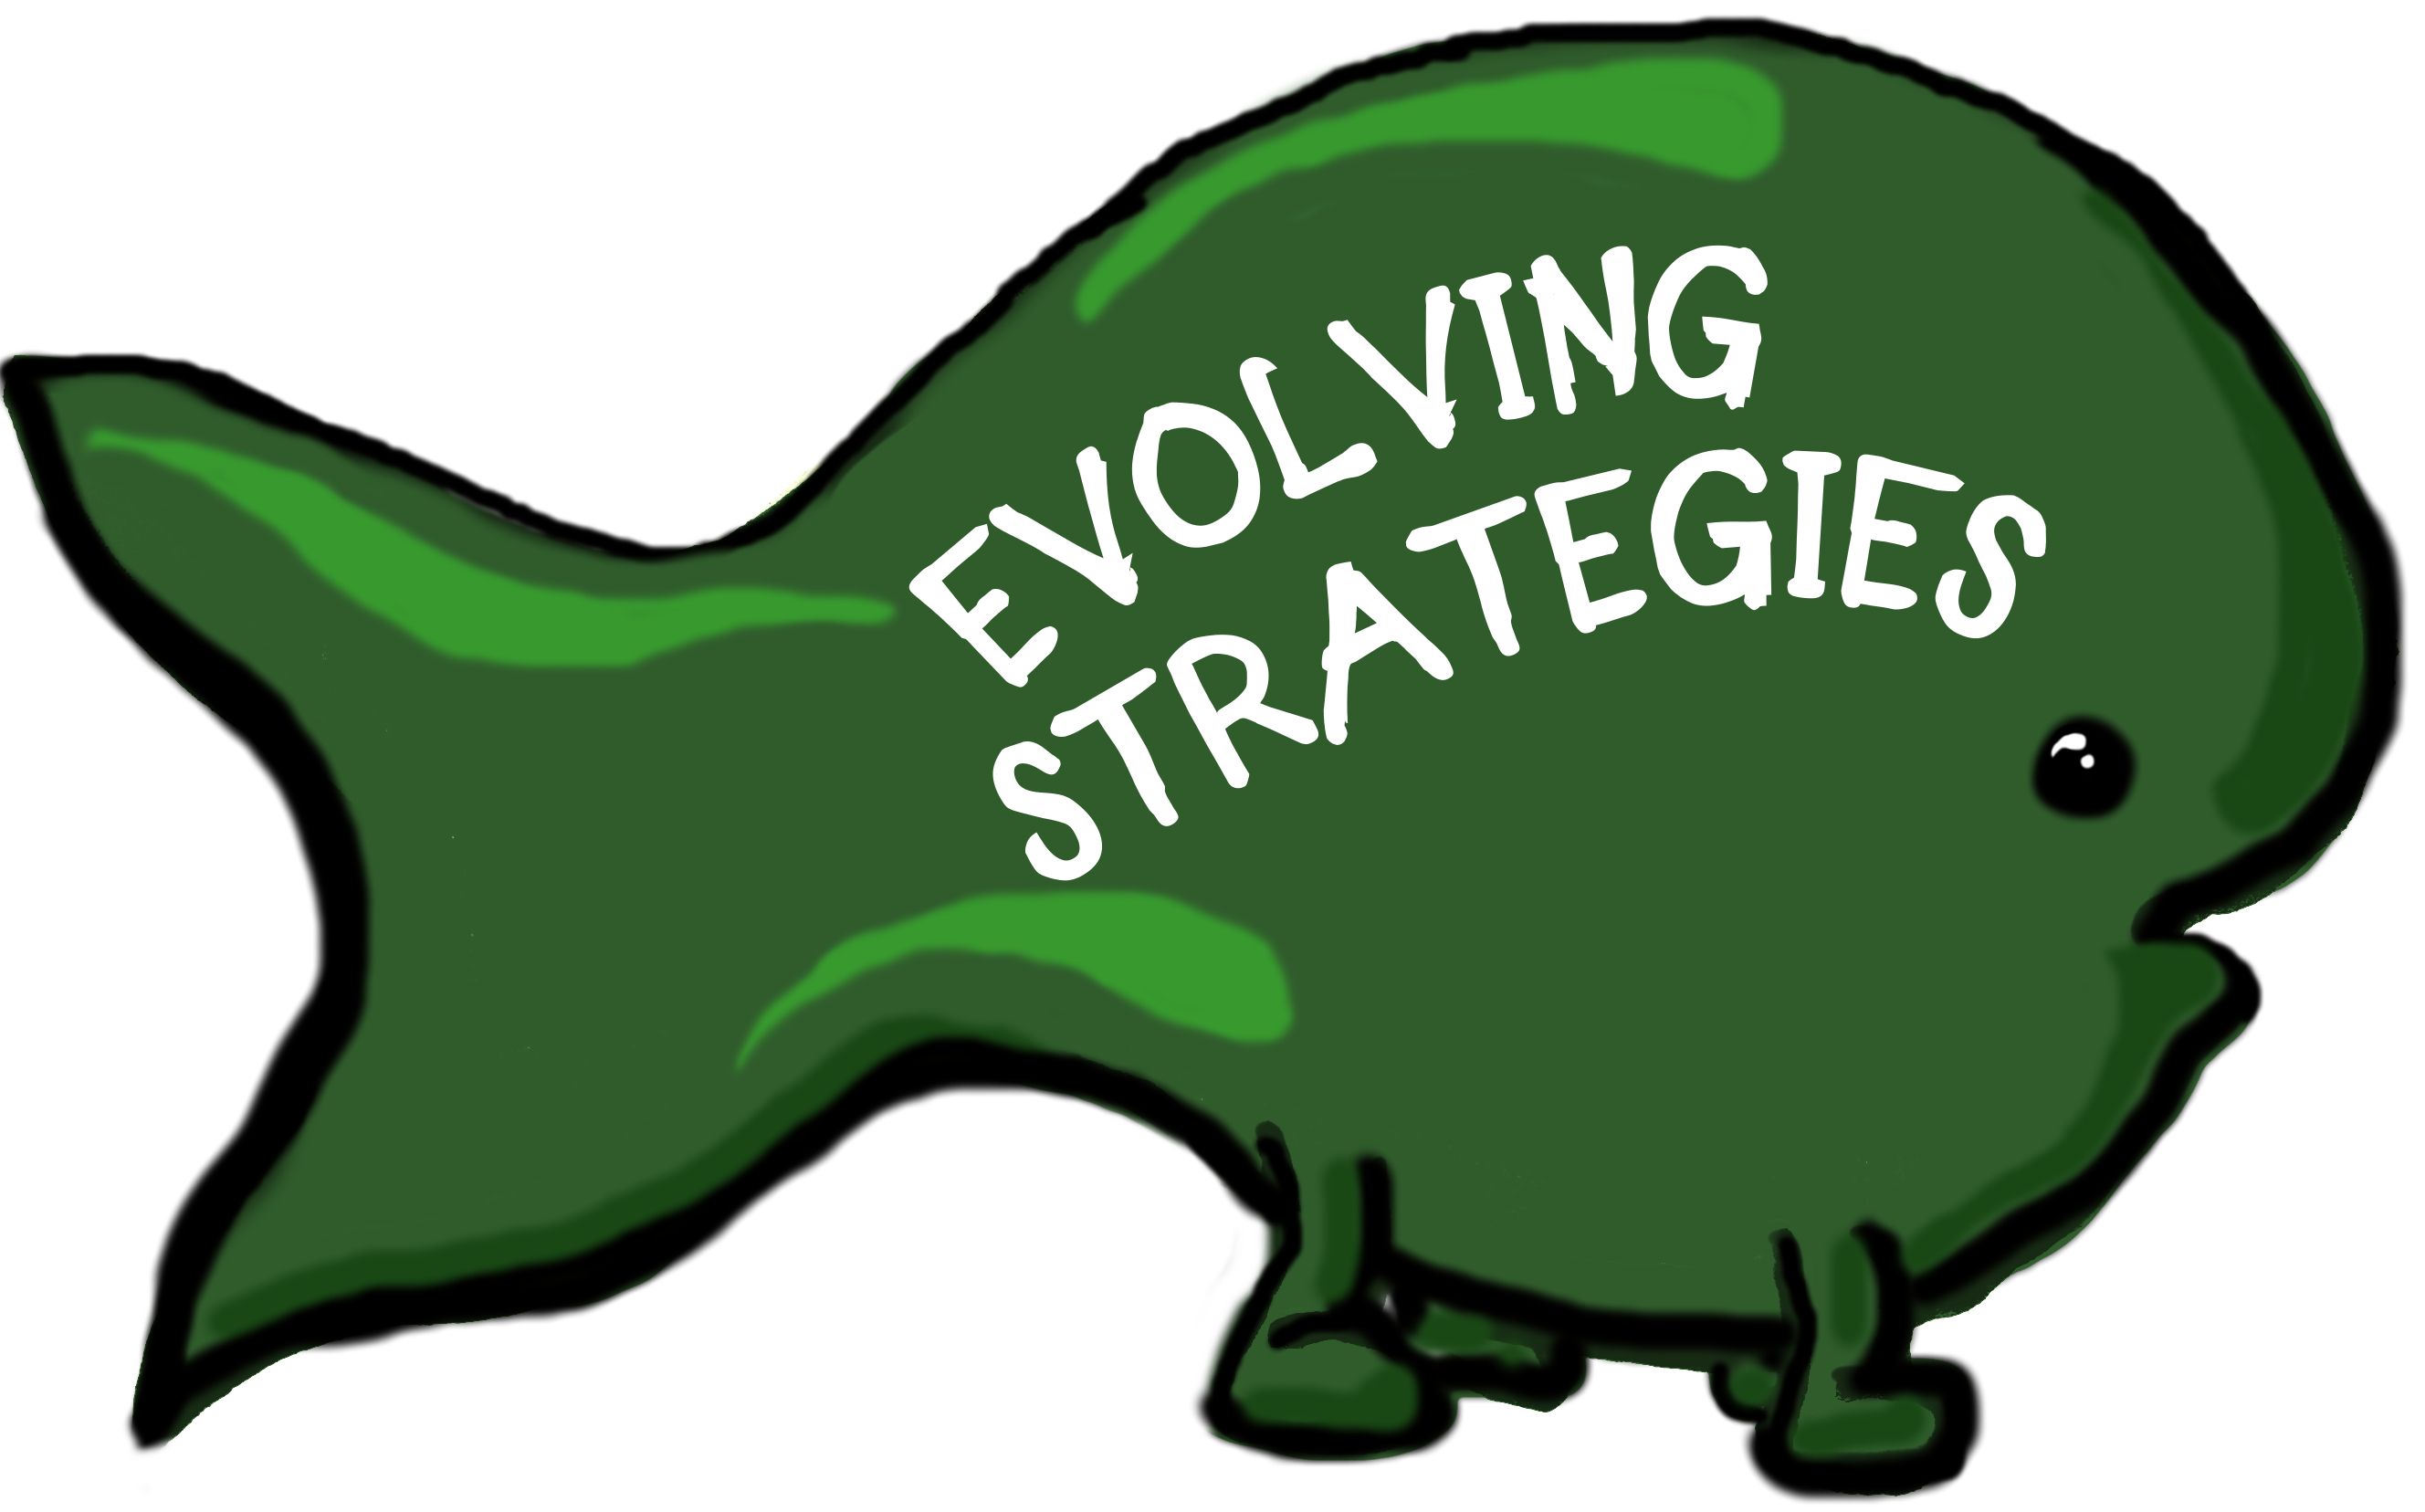 Evolving Strategies